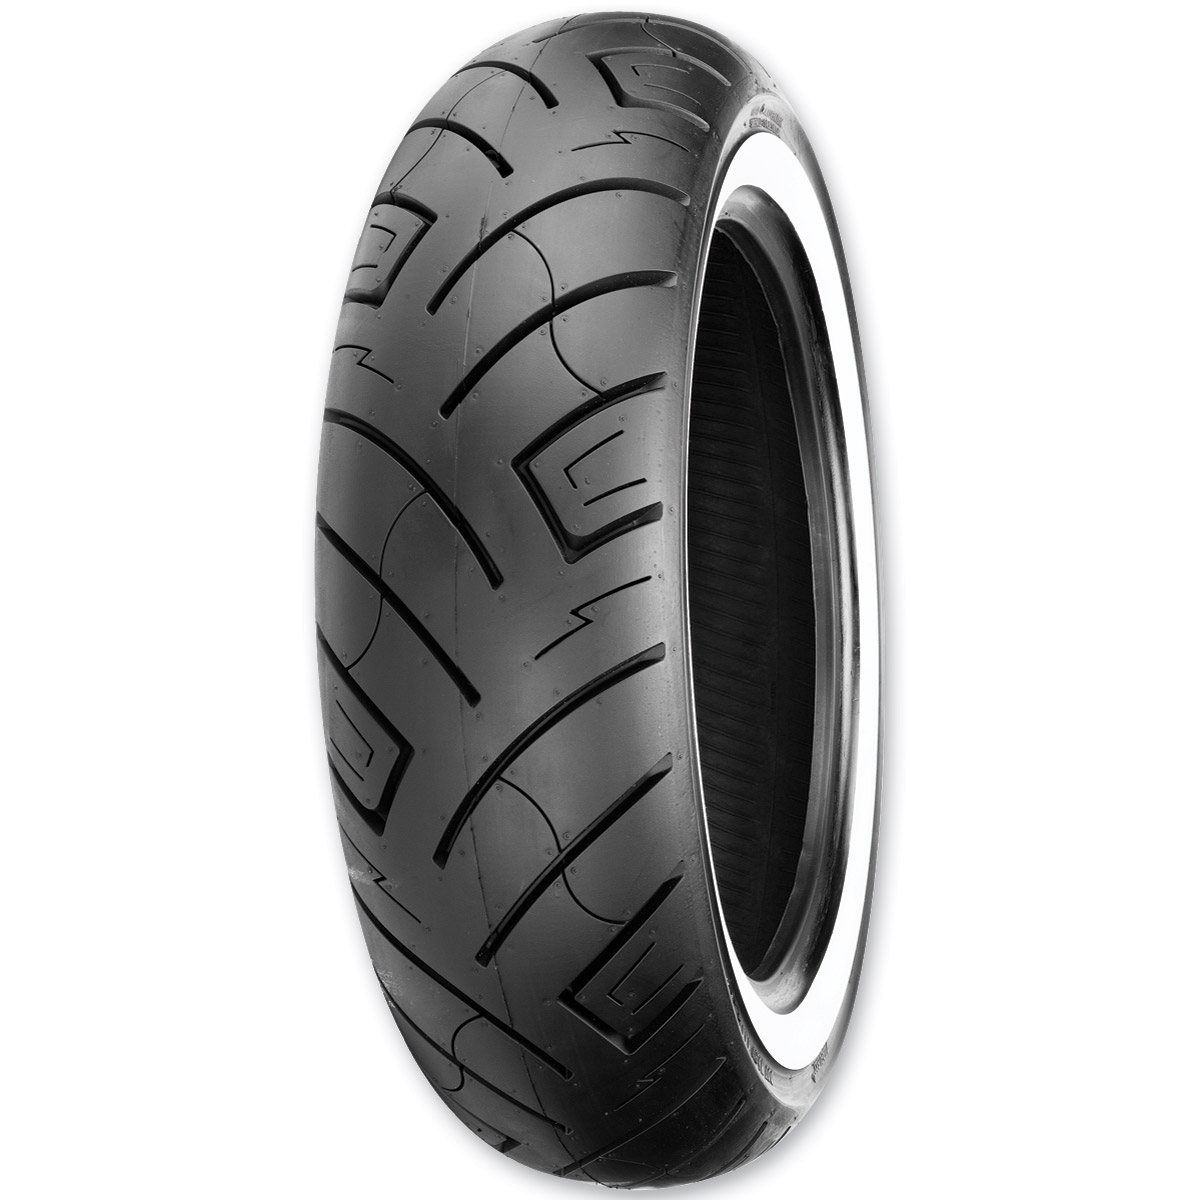 Shinko 777 170/70-16 Wide Whitewall Rear Tire